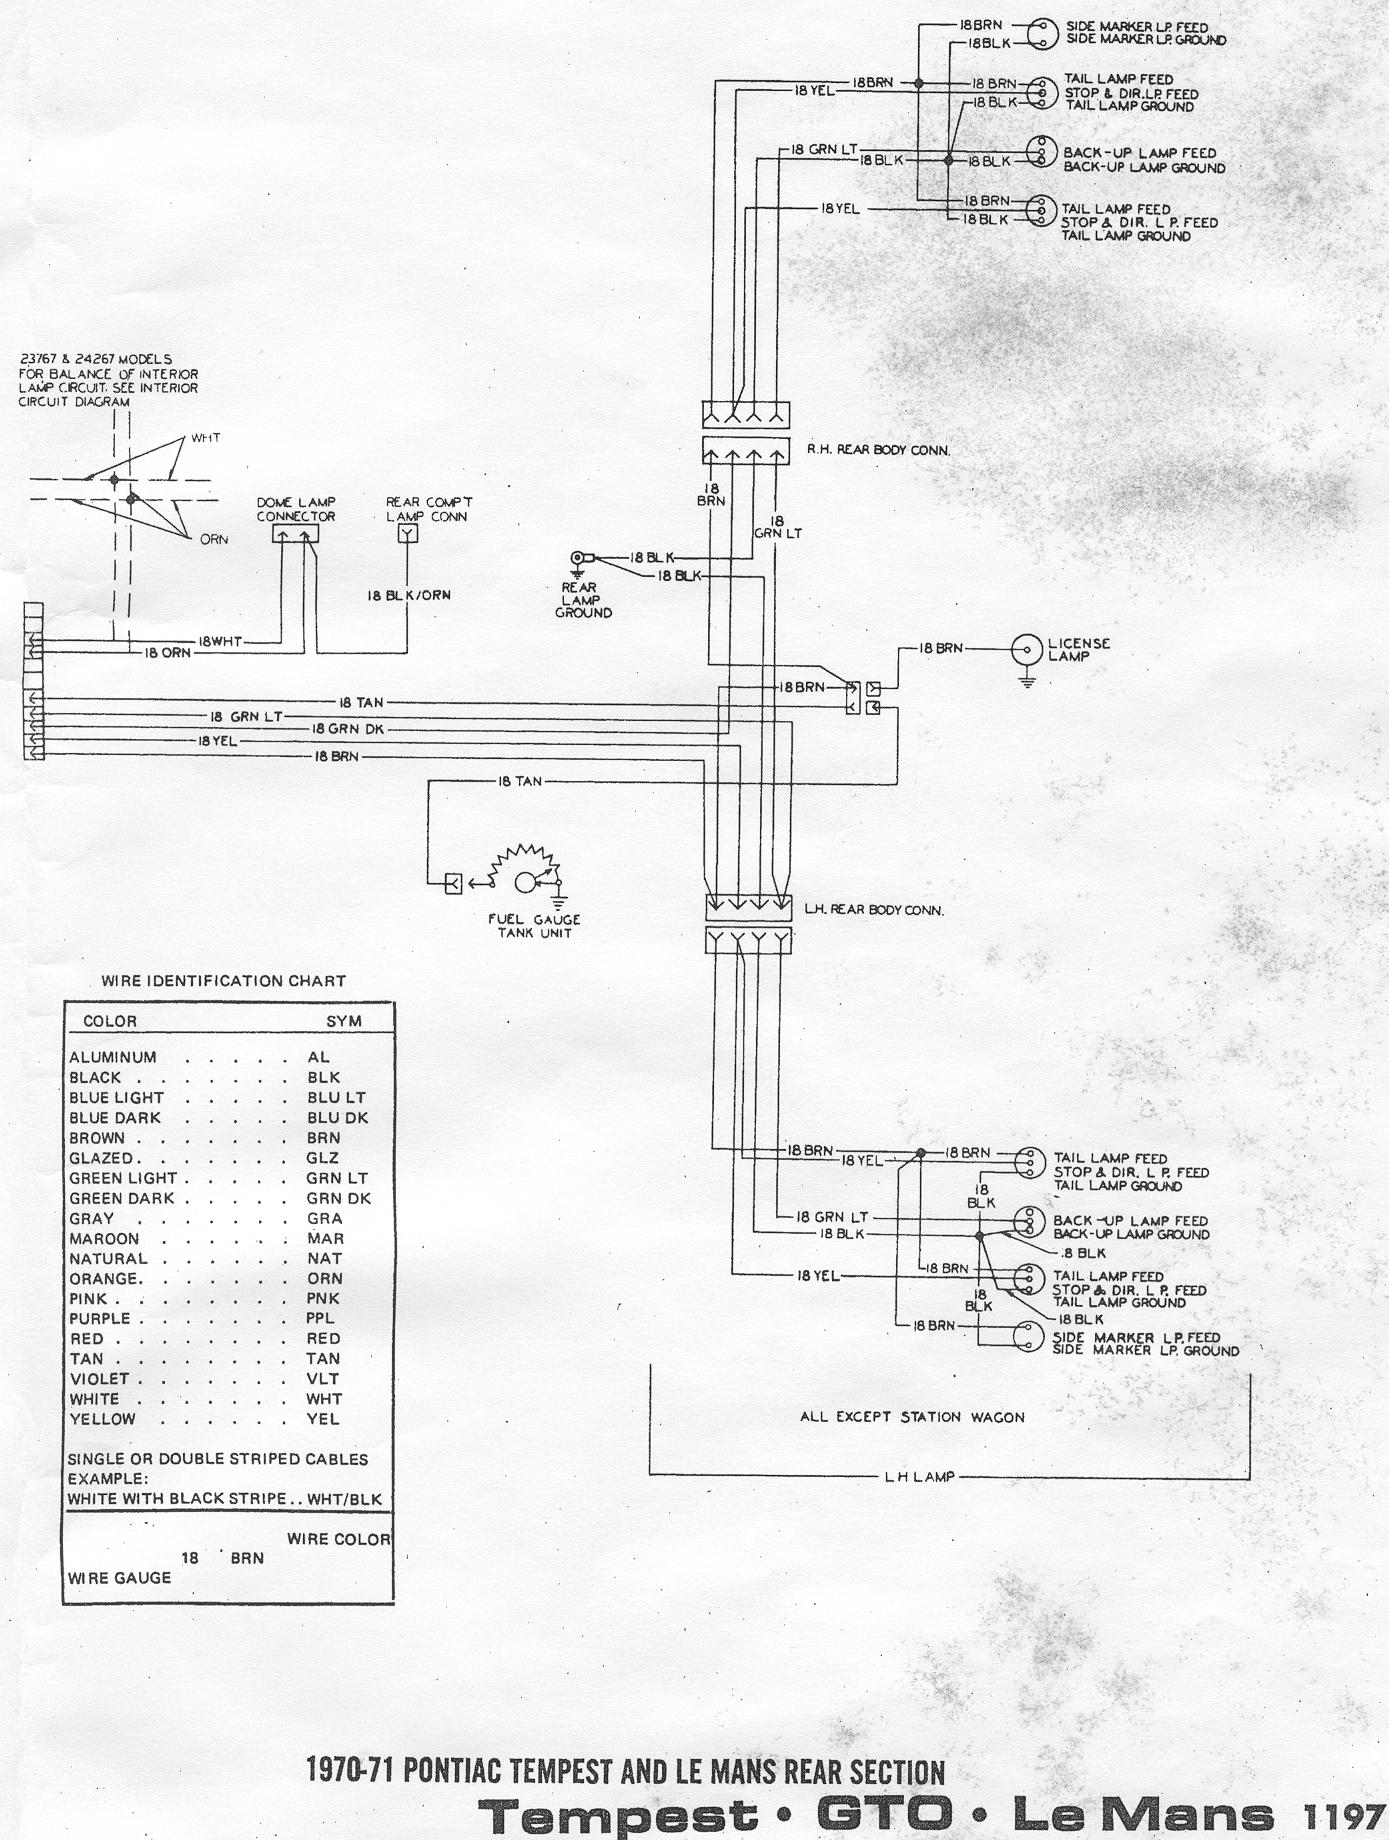 gto wiring diagram scans pontiac gto forum jpg views 63700 size click image for larger version 70 71 gto page2